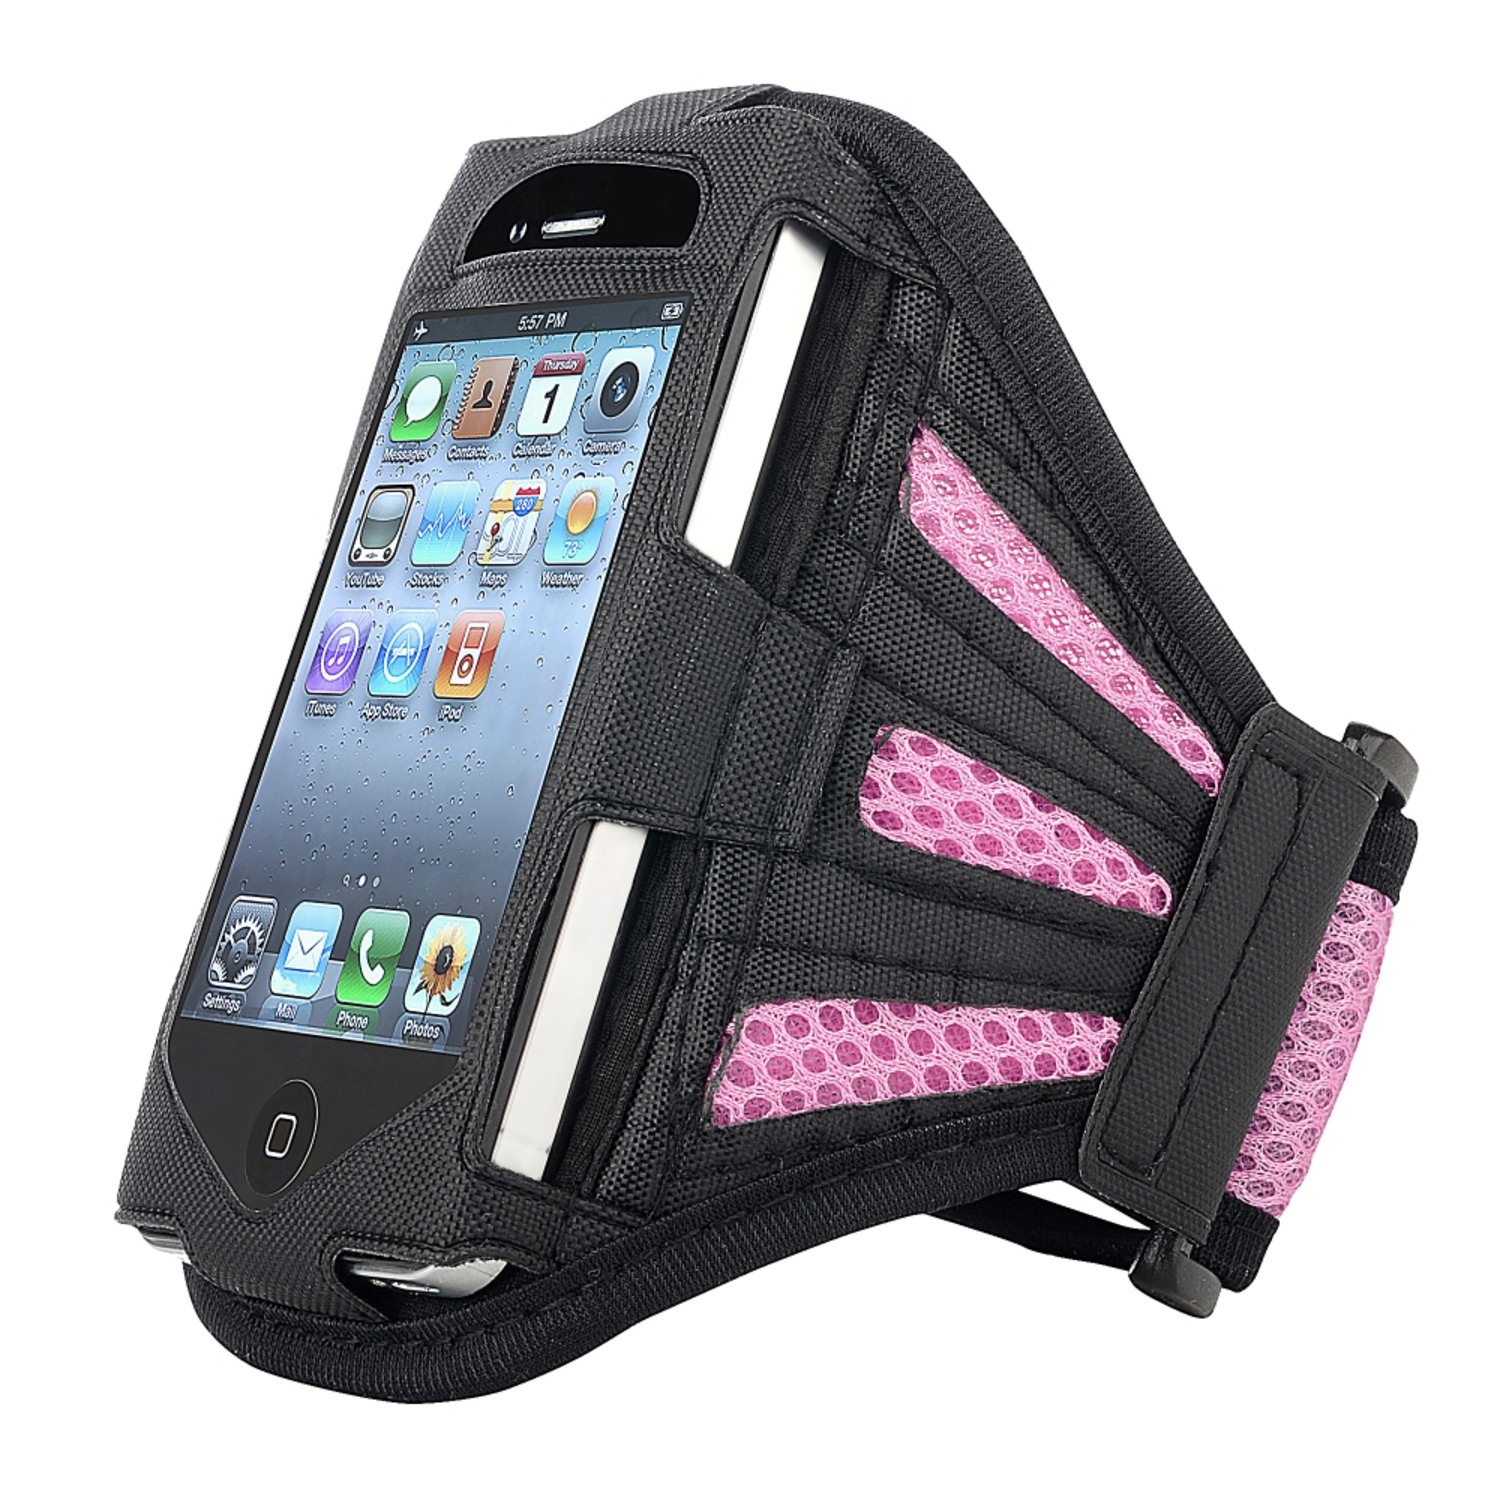 Insten Deluxe Armband For Apple iPhone 4 / 4S / 3G / 3GS / iPod touch, Black / Light Pink